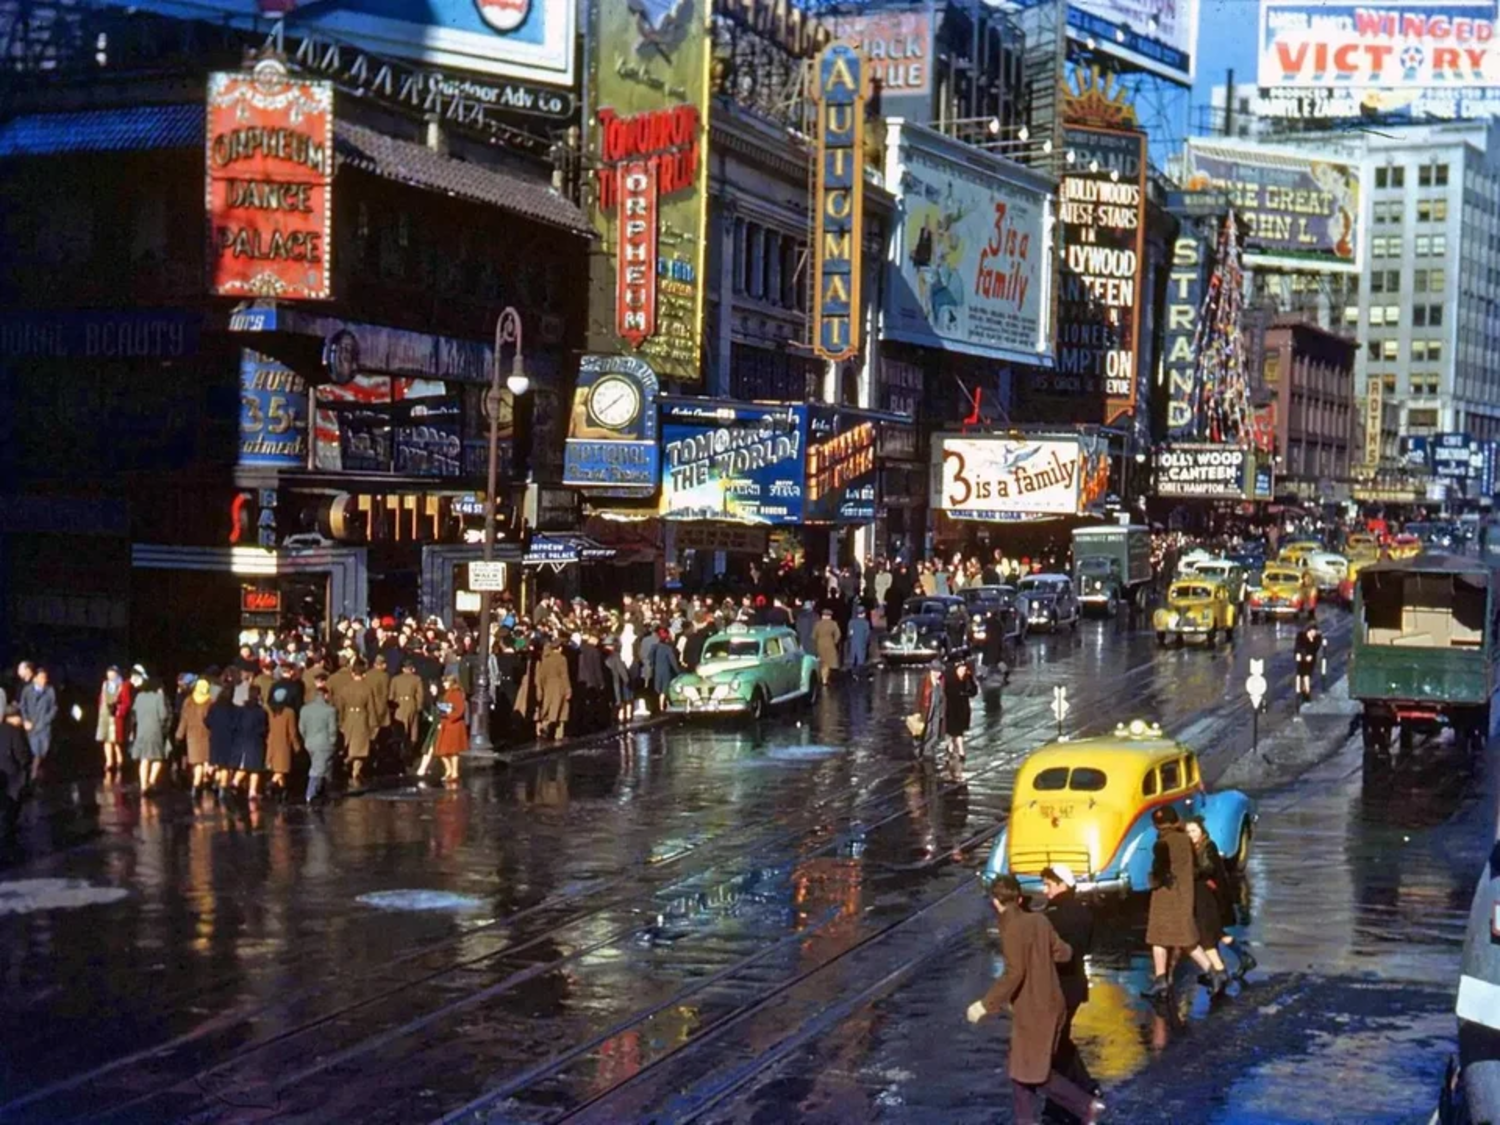 New York City in the 1940s - amazingly the photograph has not been colourised or artificially sharpened